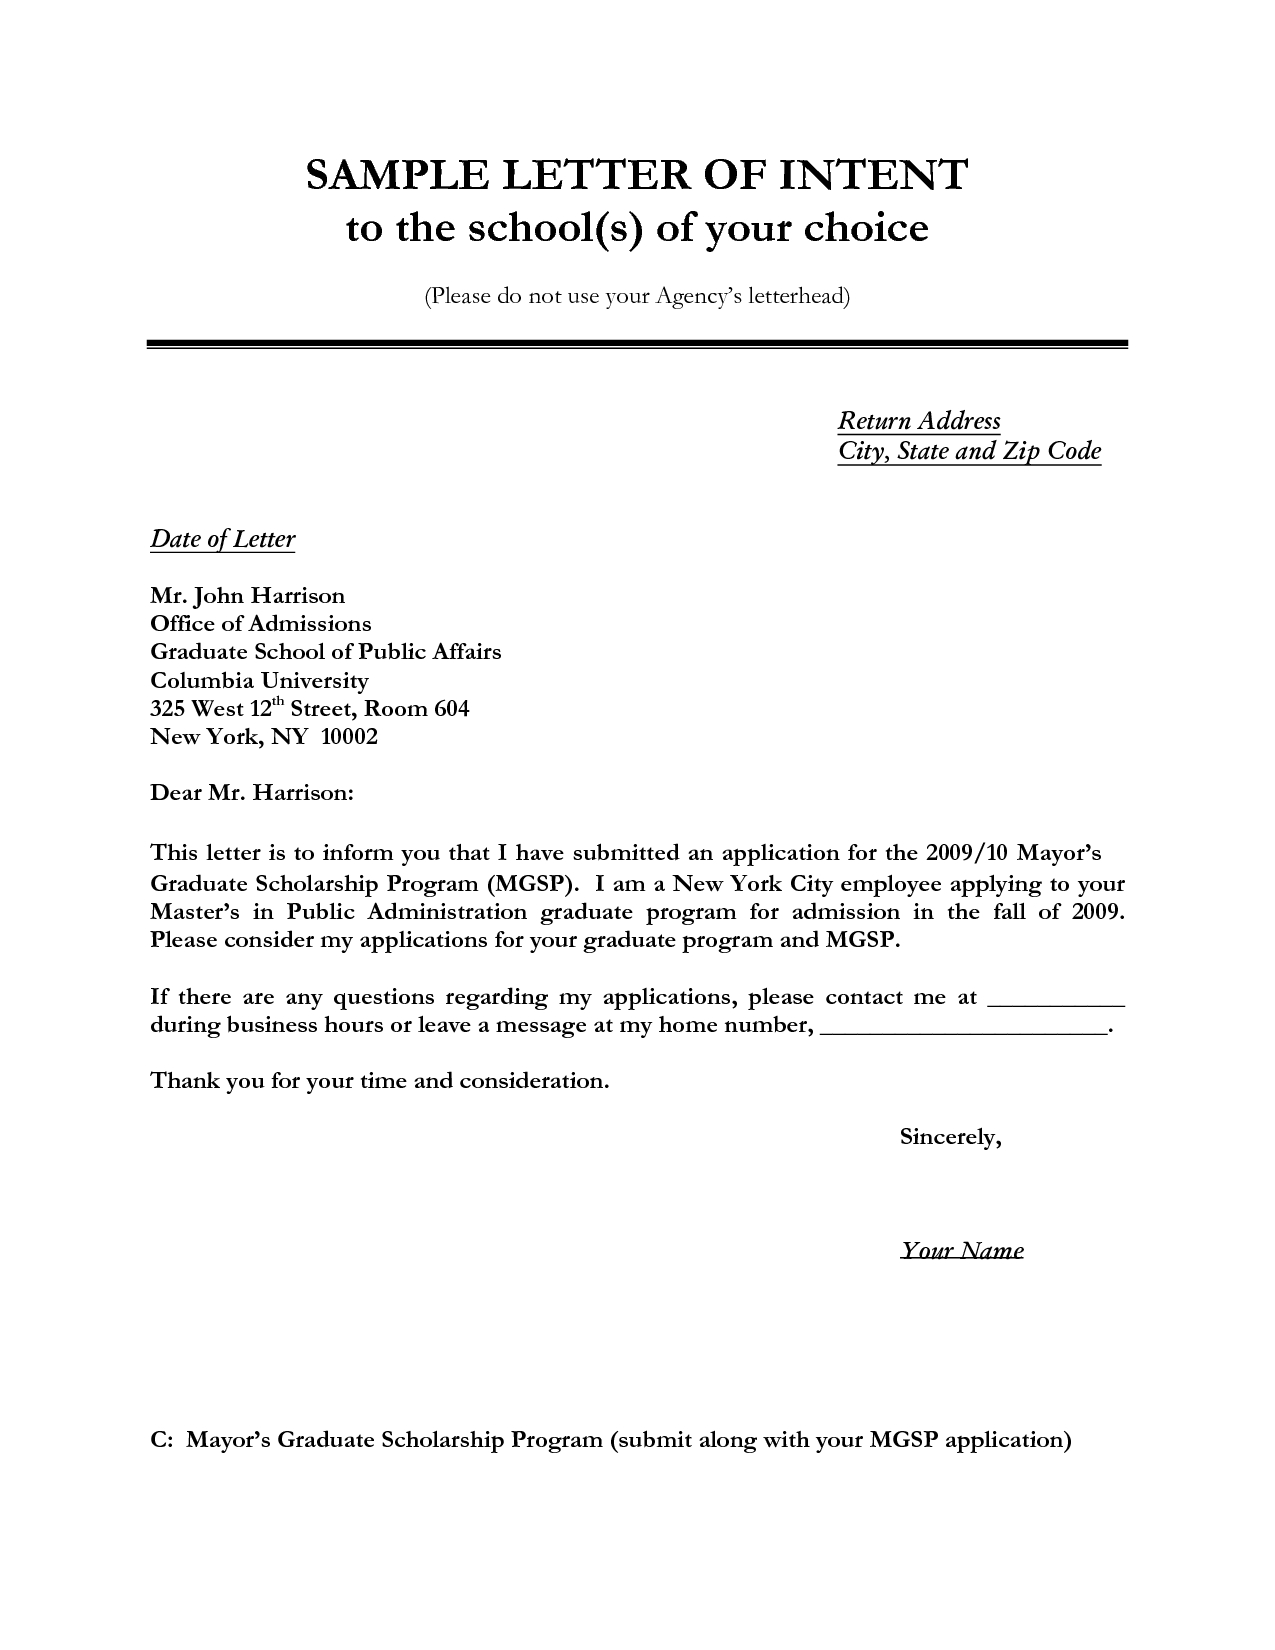 Letter Of Intent to Hire Template - Letter Of Intent Sample